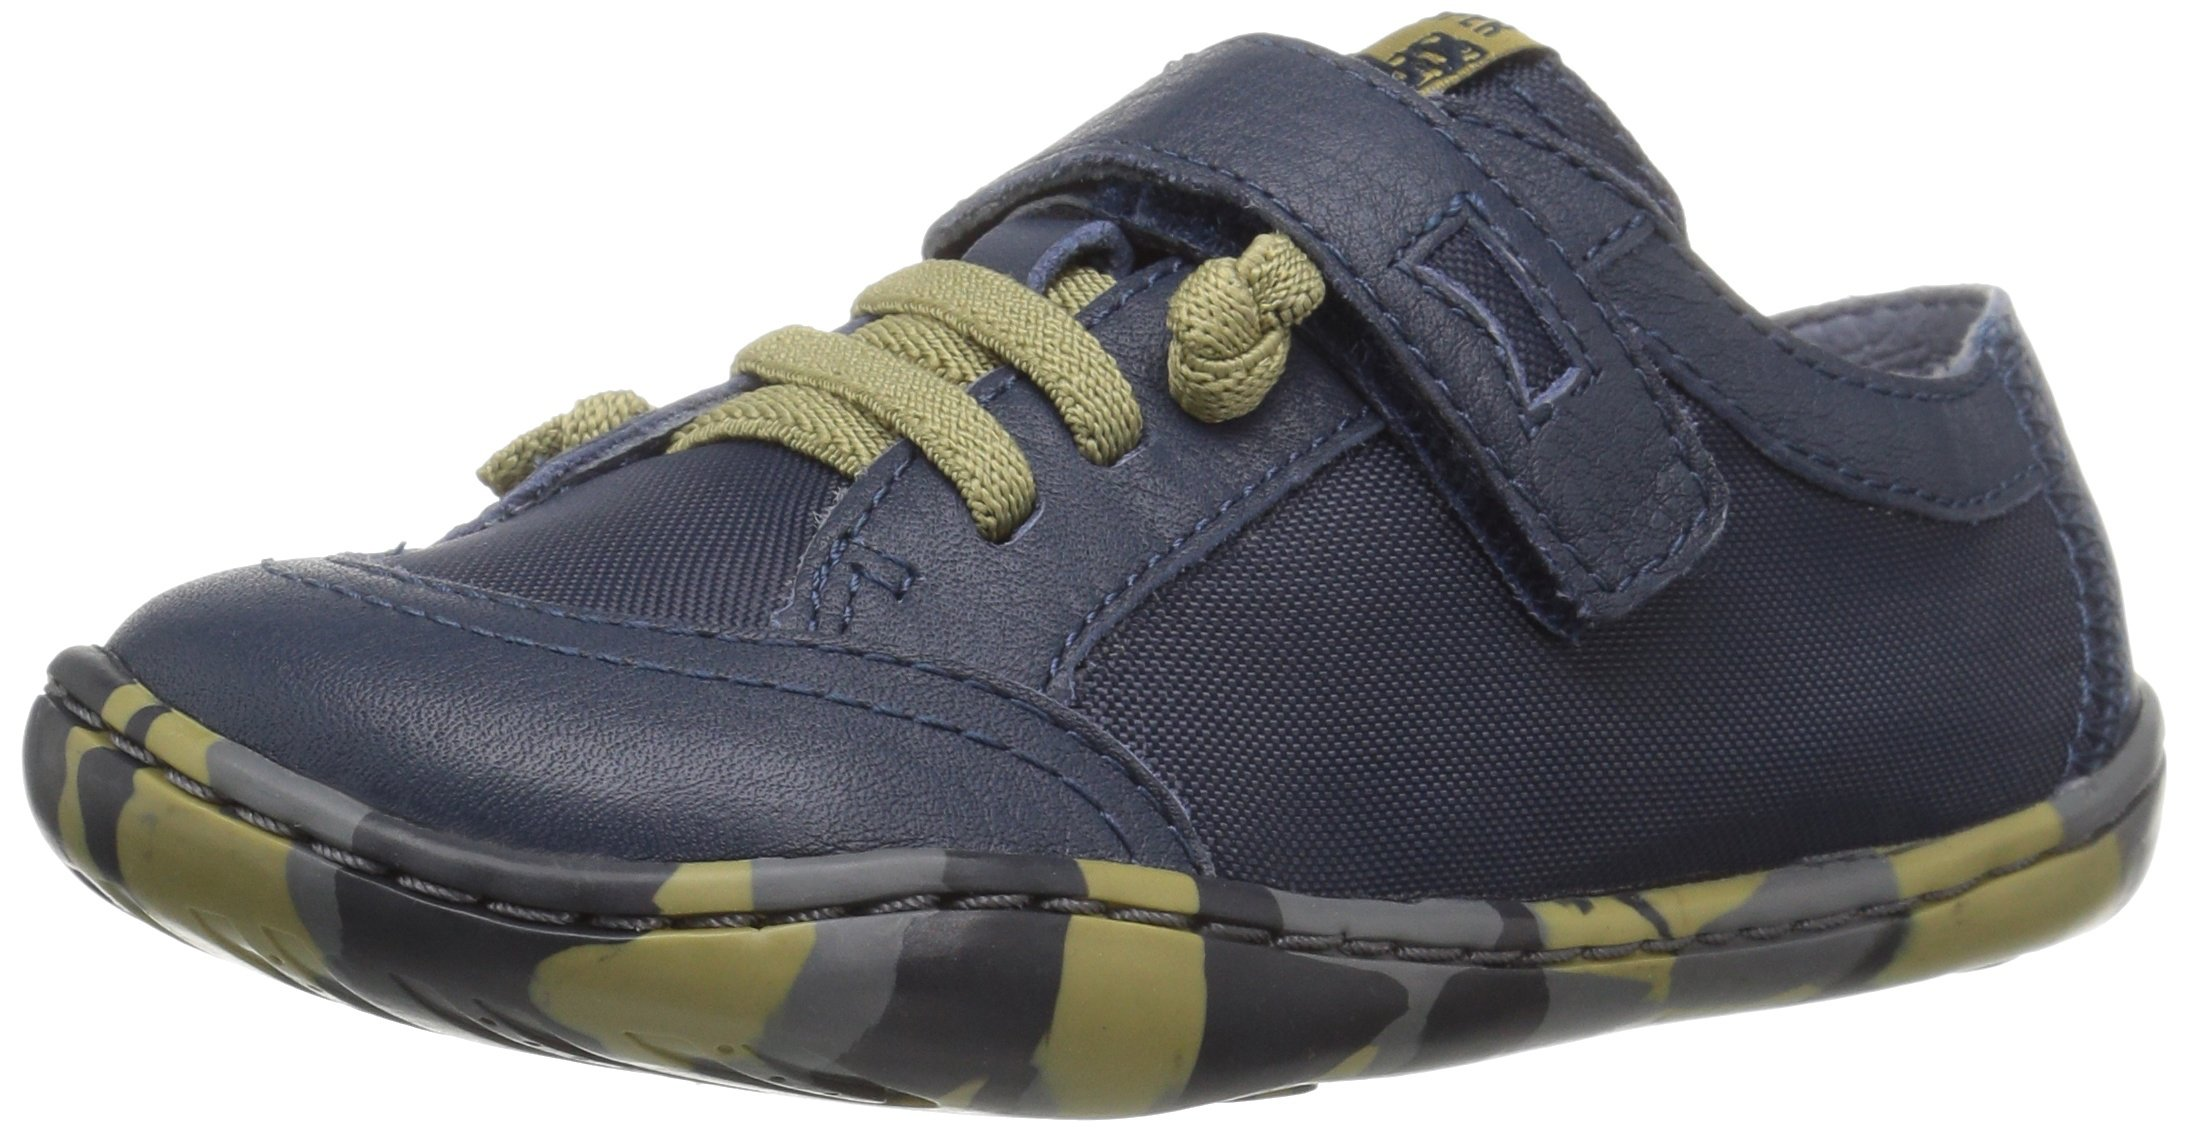 Camper Kids Kids' Peu Cami K800103 Slip-on, Navy, 36 EU/5 M US Big Kid by Camper